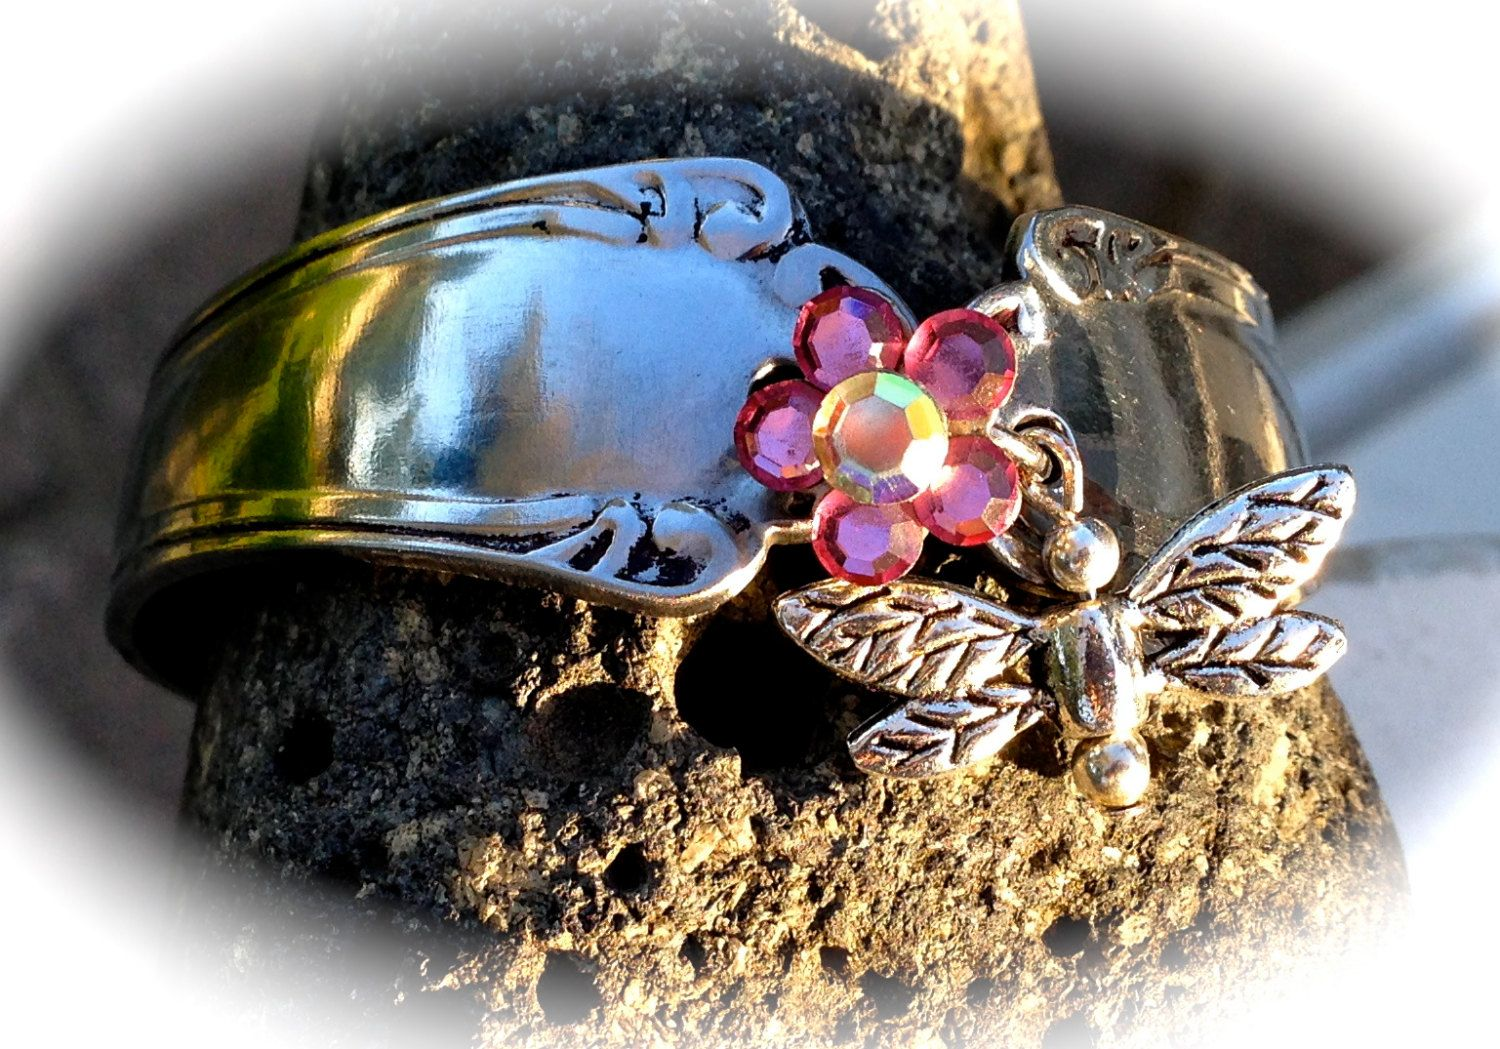 Beautiful bracelete recycled from Stainless Steel silverware by SuzoosPlace on Etsy